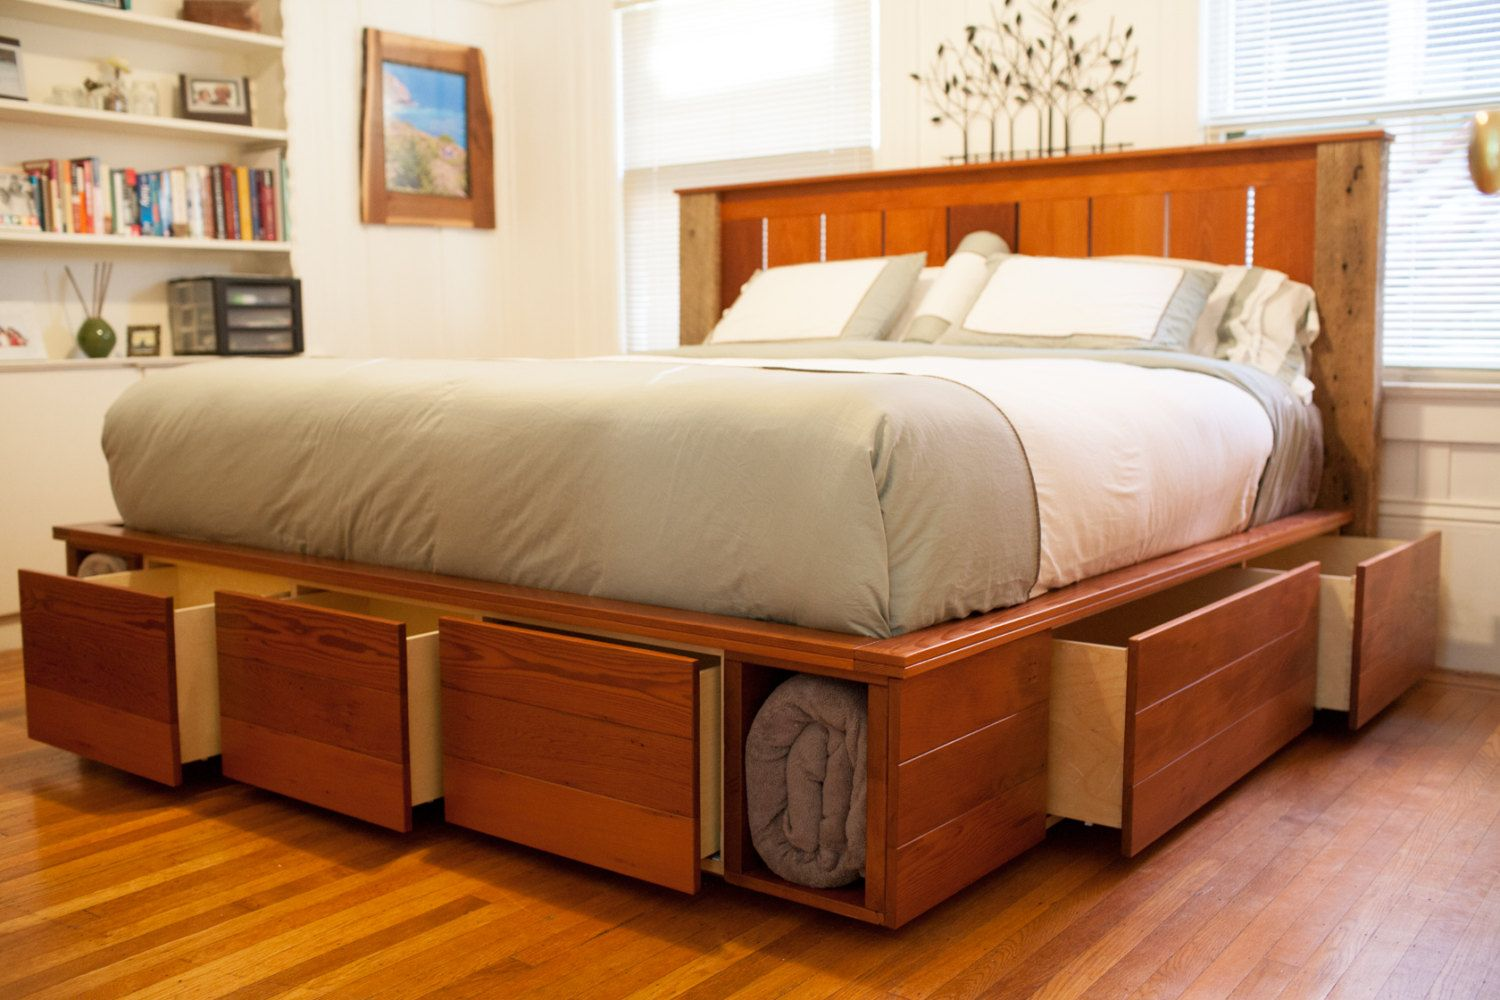 Platform Bed Woodworking Plans You Can Build This King Size Bed Which Features A Royal Amou Bed Frame With